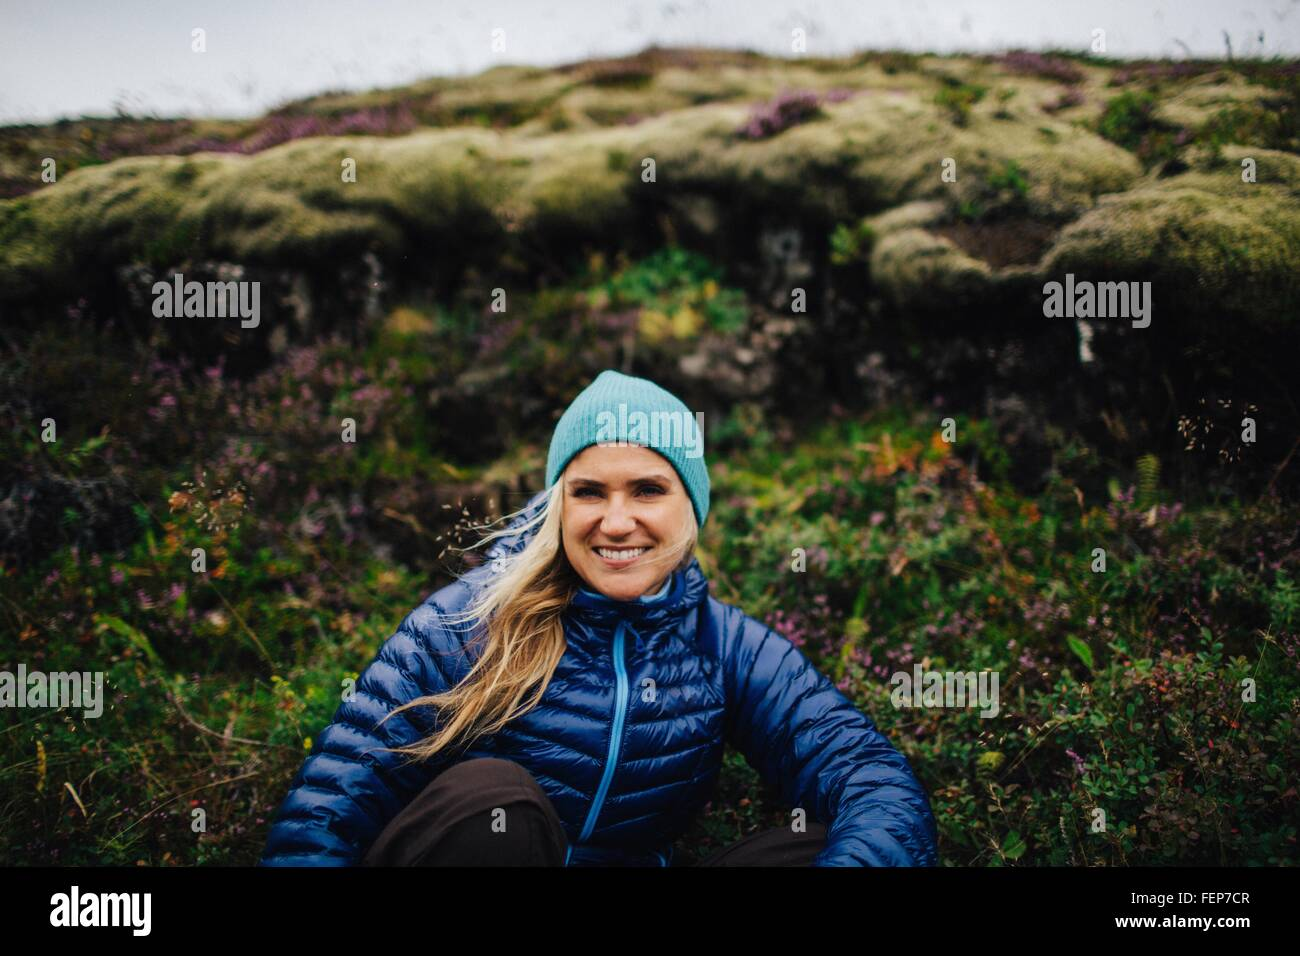 Front view of mid adult woman crouched in front of mound wearing knit hat looking at camera smiling, Iceland - Stock Image